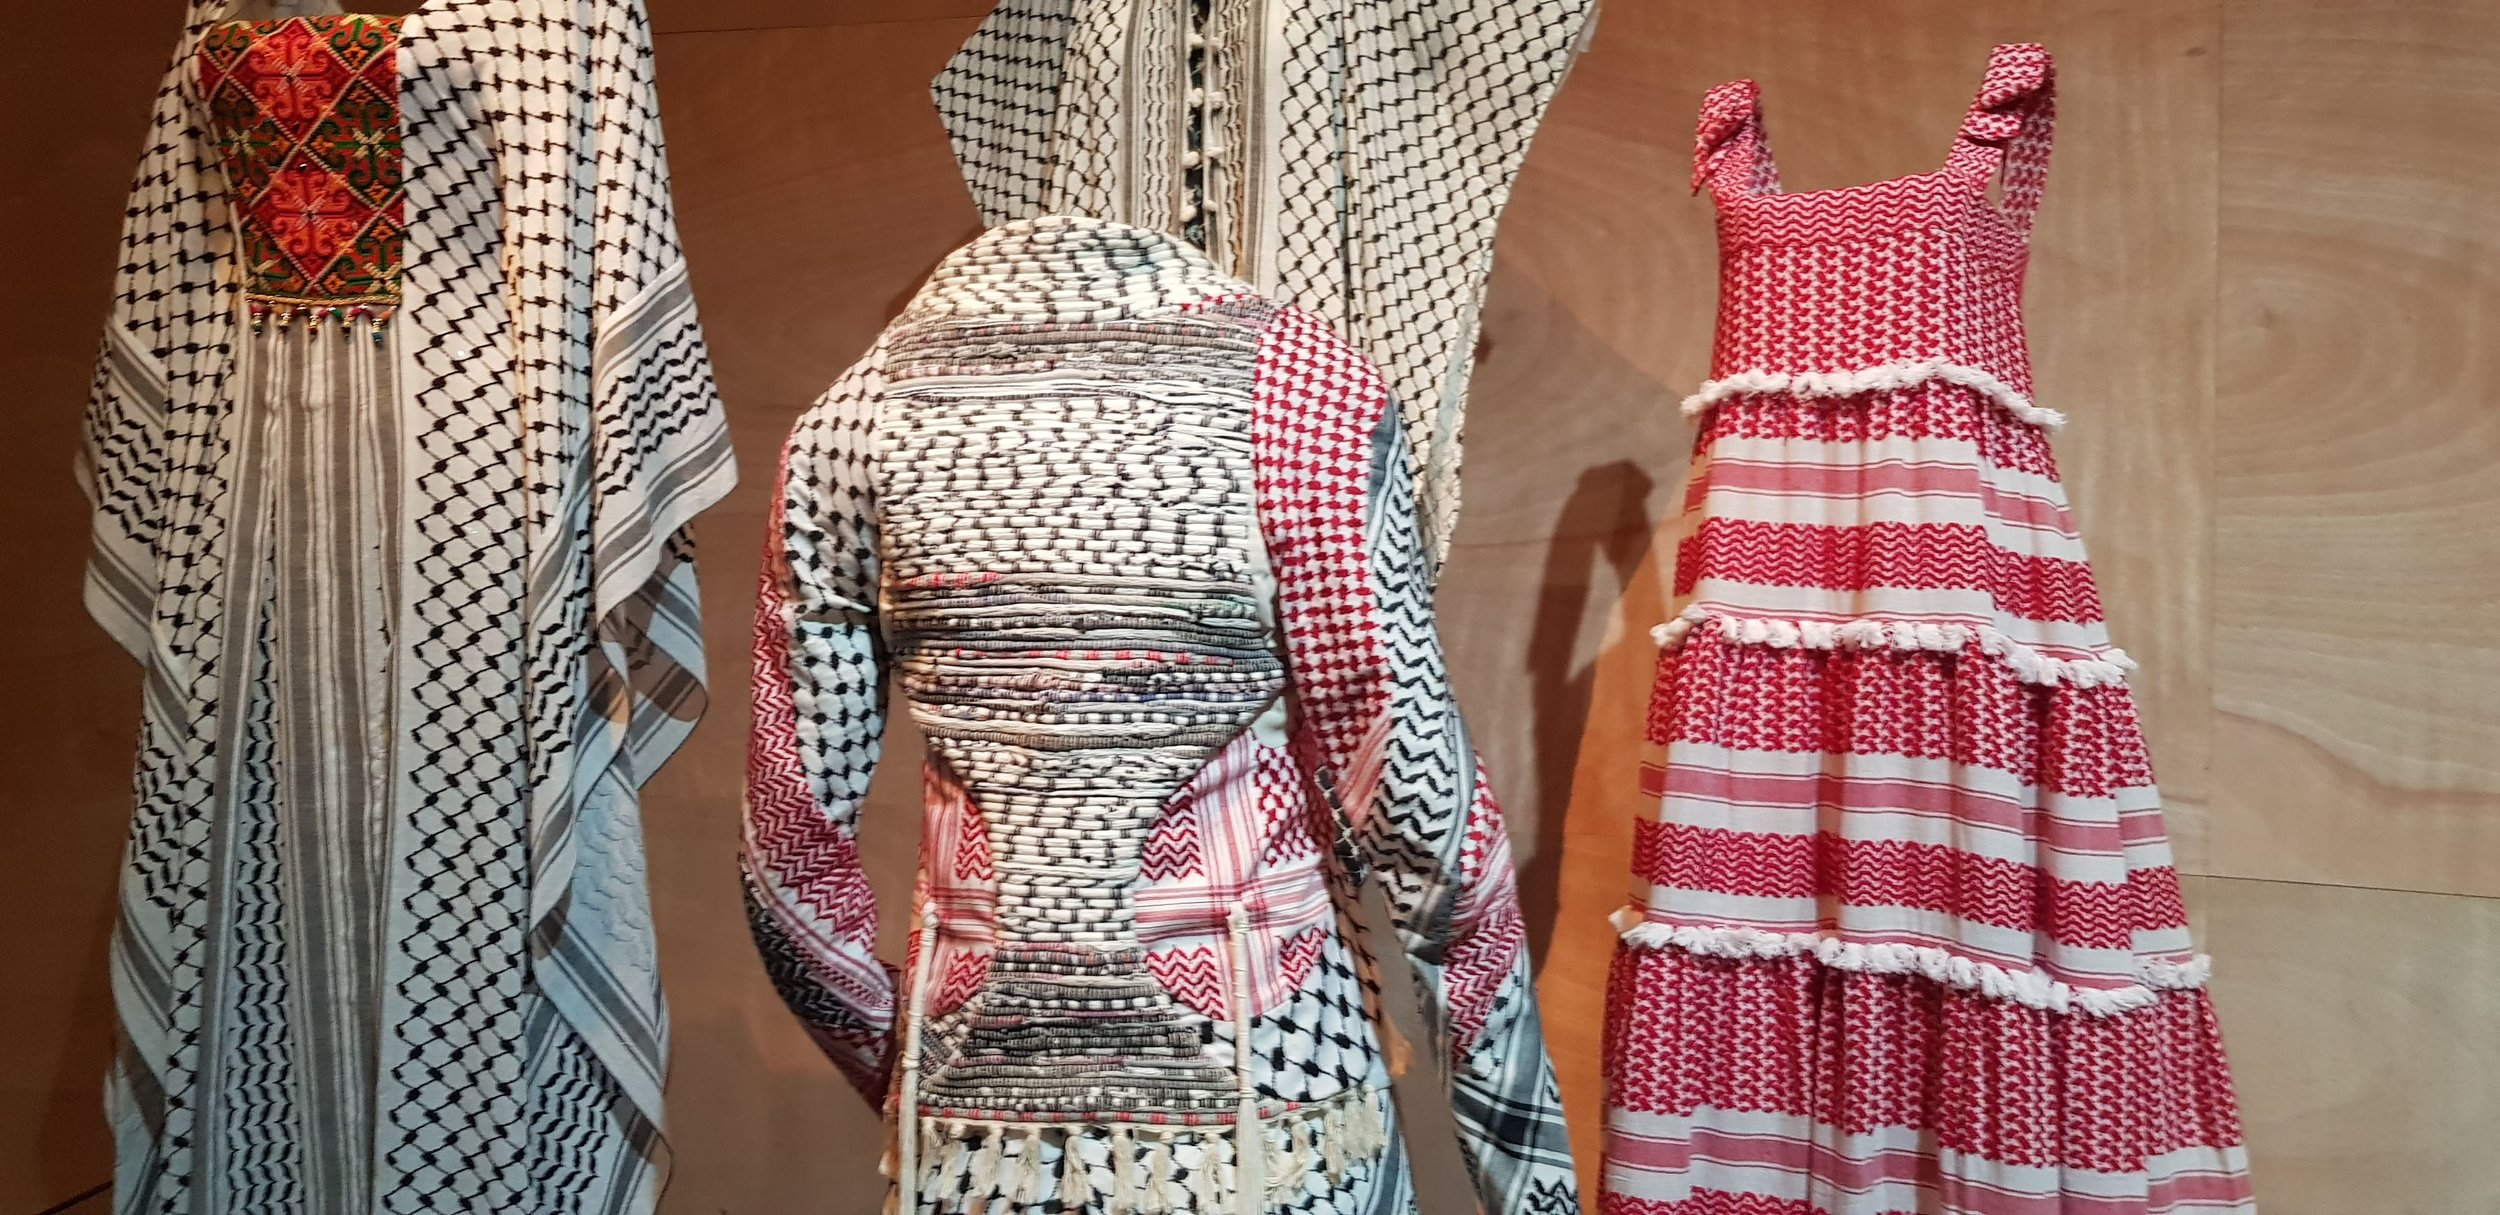 - The Kaffiyeh is charged with national and political meaning and story of its integration into, and the rejection from local fashion. reflects the evolution of the relations between Jews and Arabs in Israel.